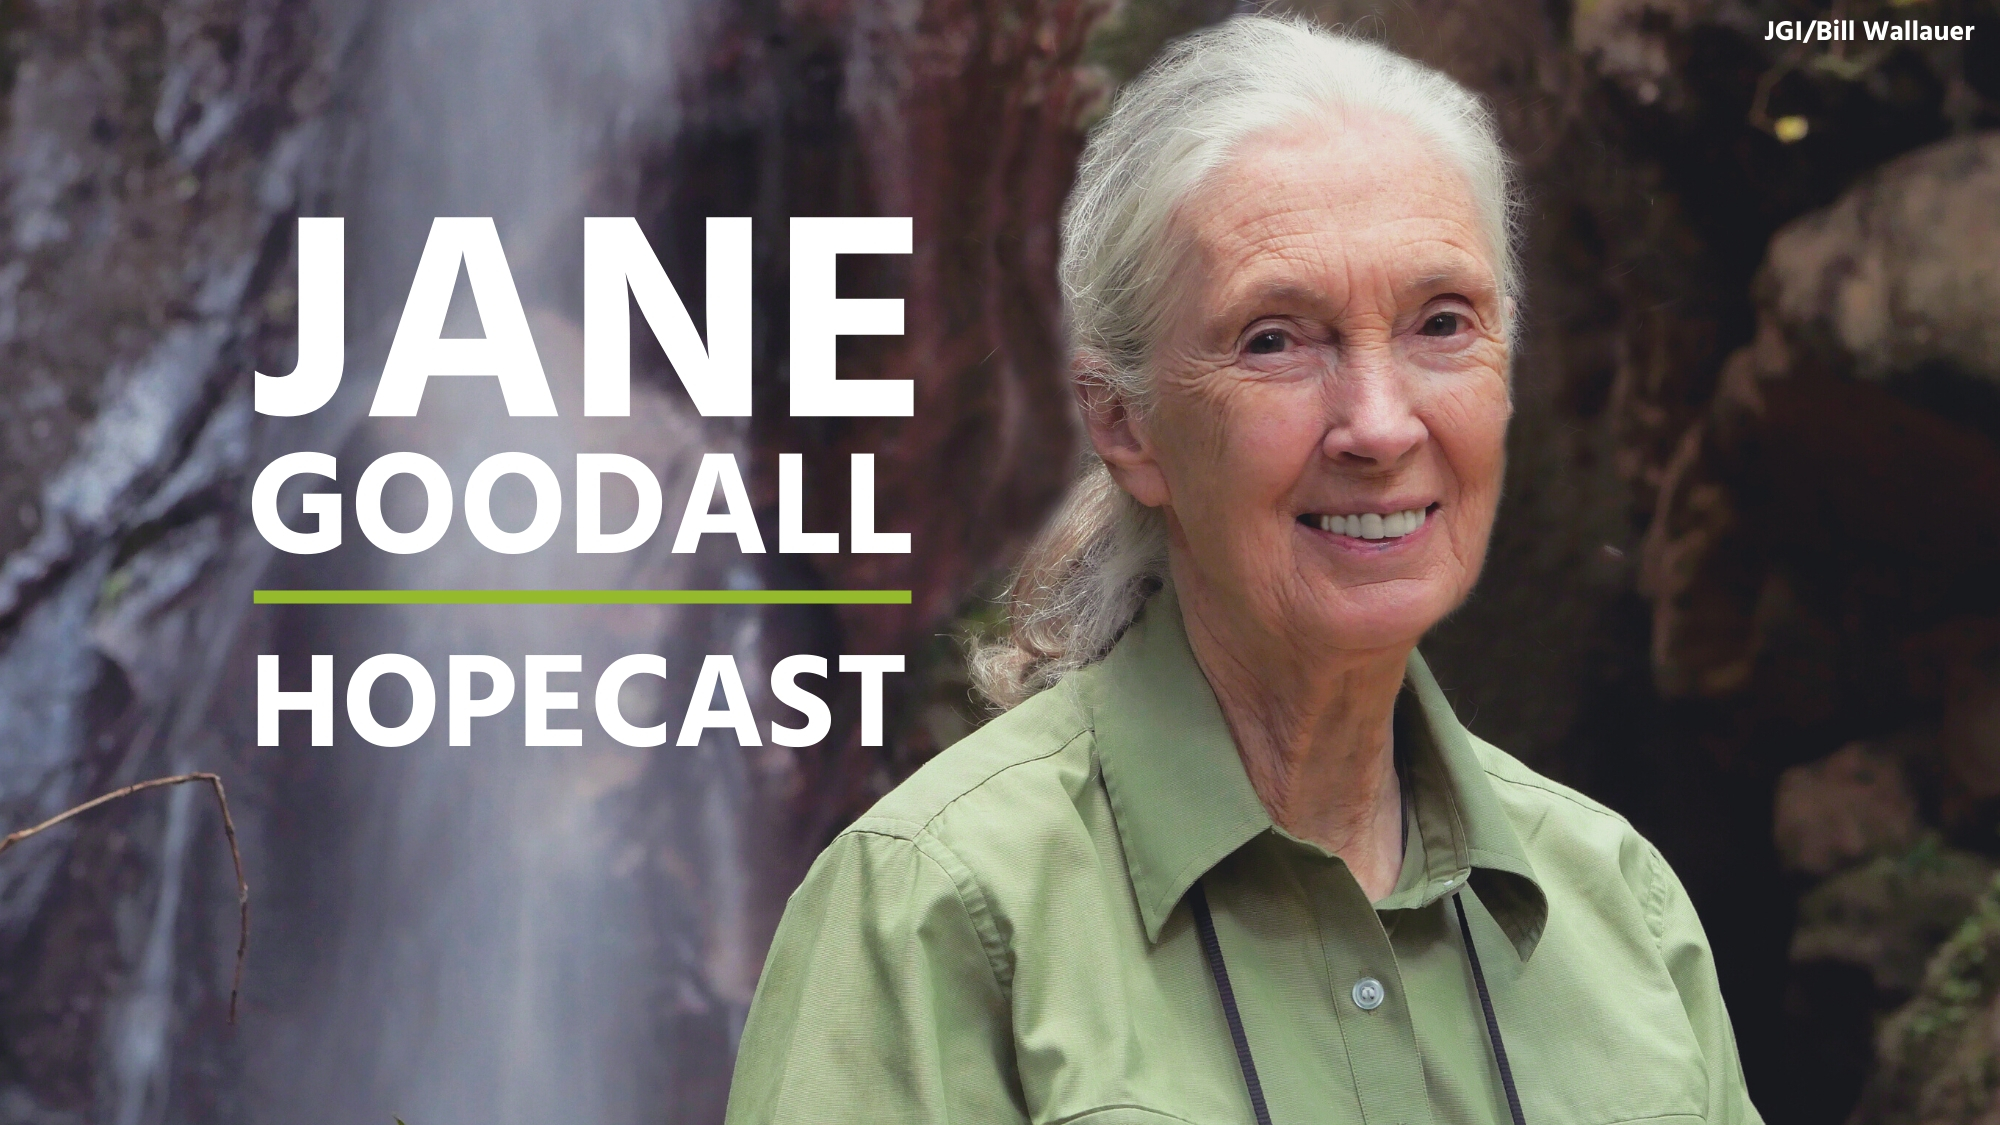 Coming Soon – Jane Goodall: Hopecast